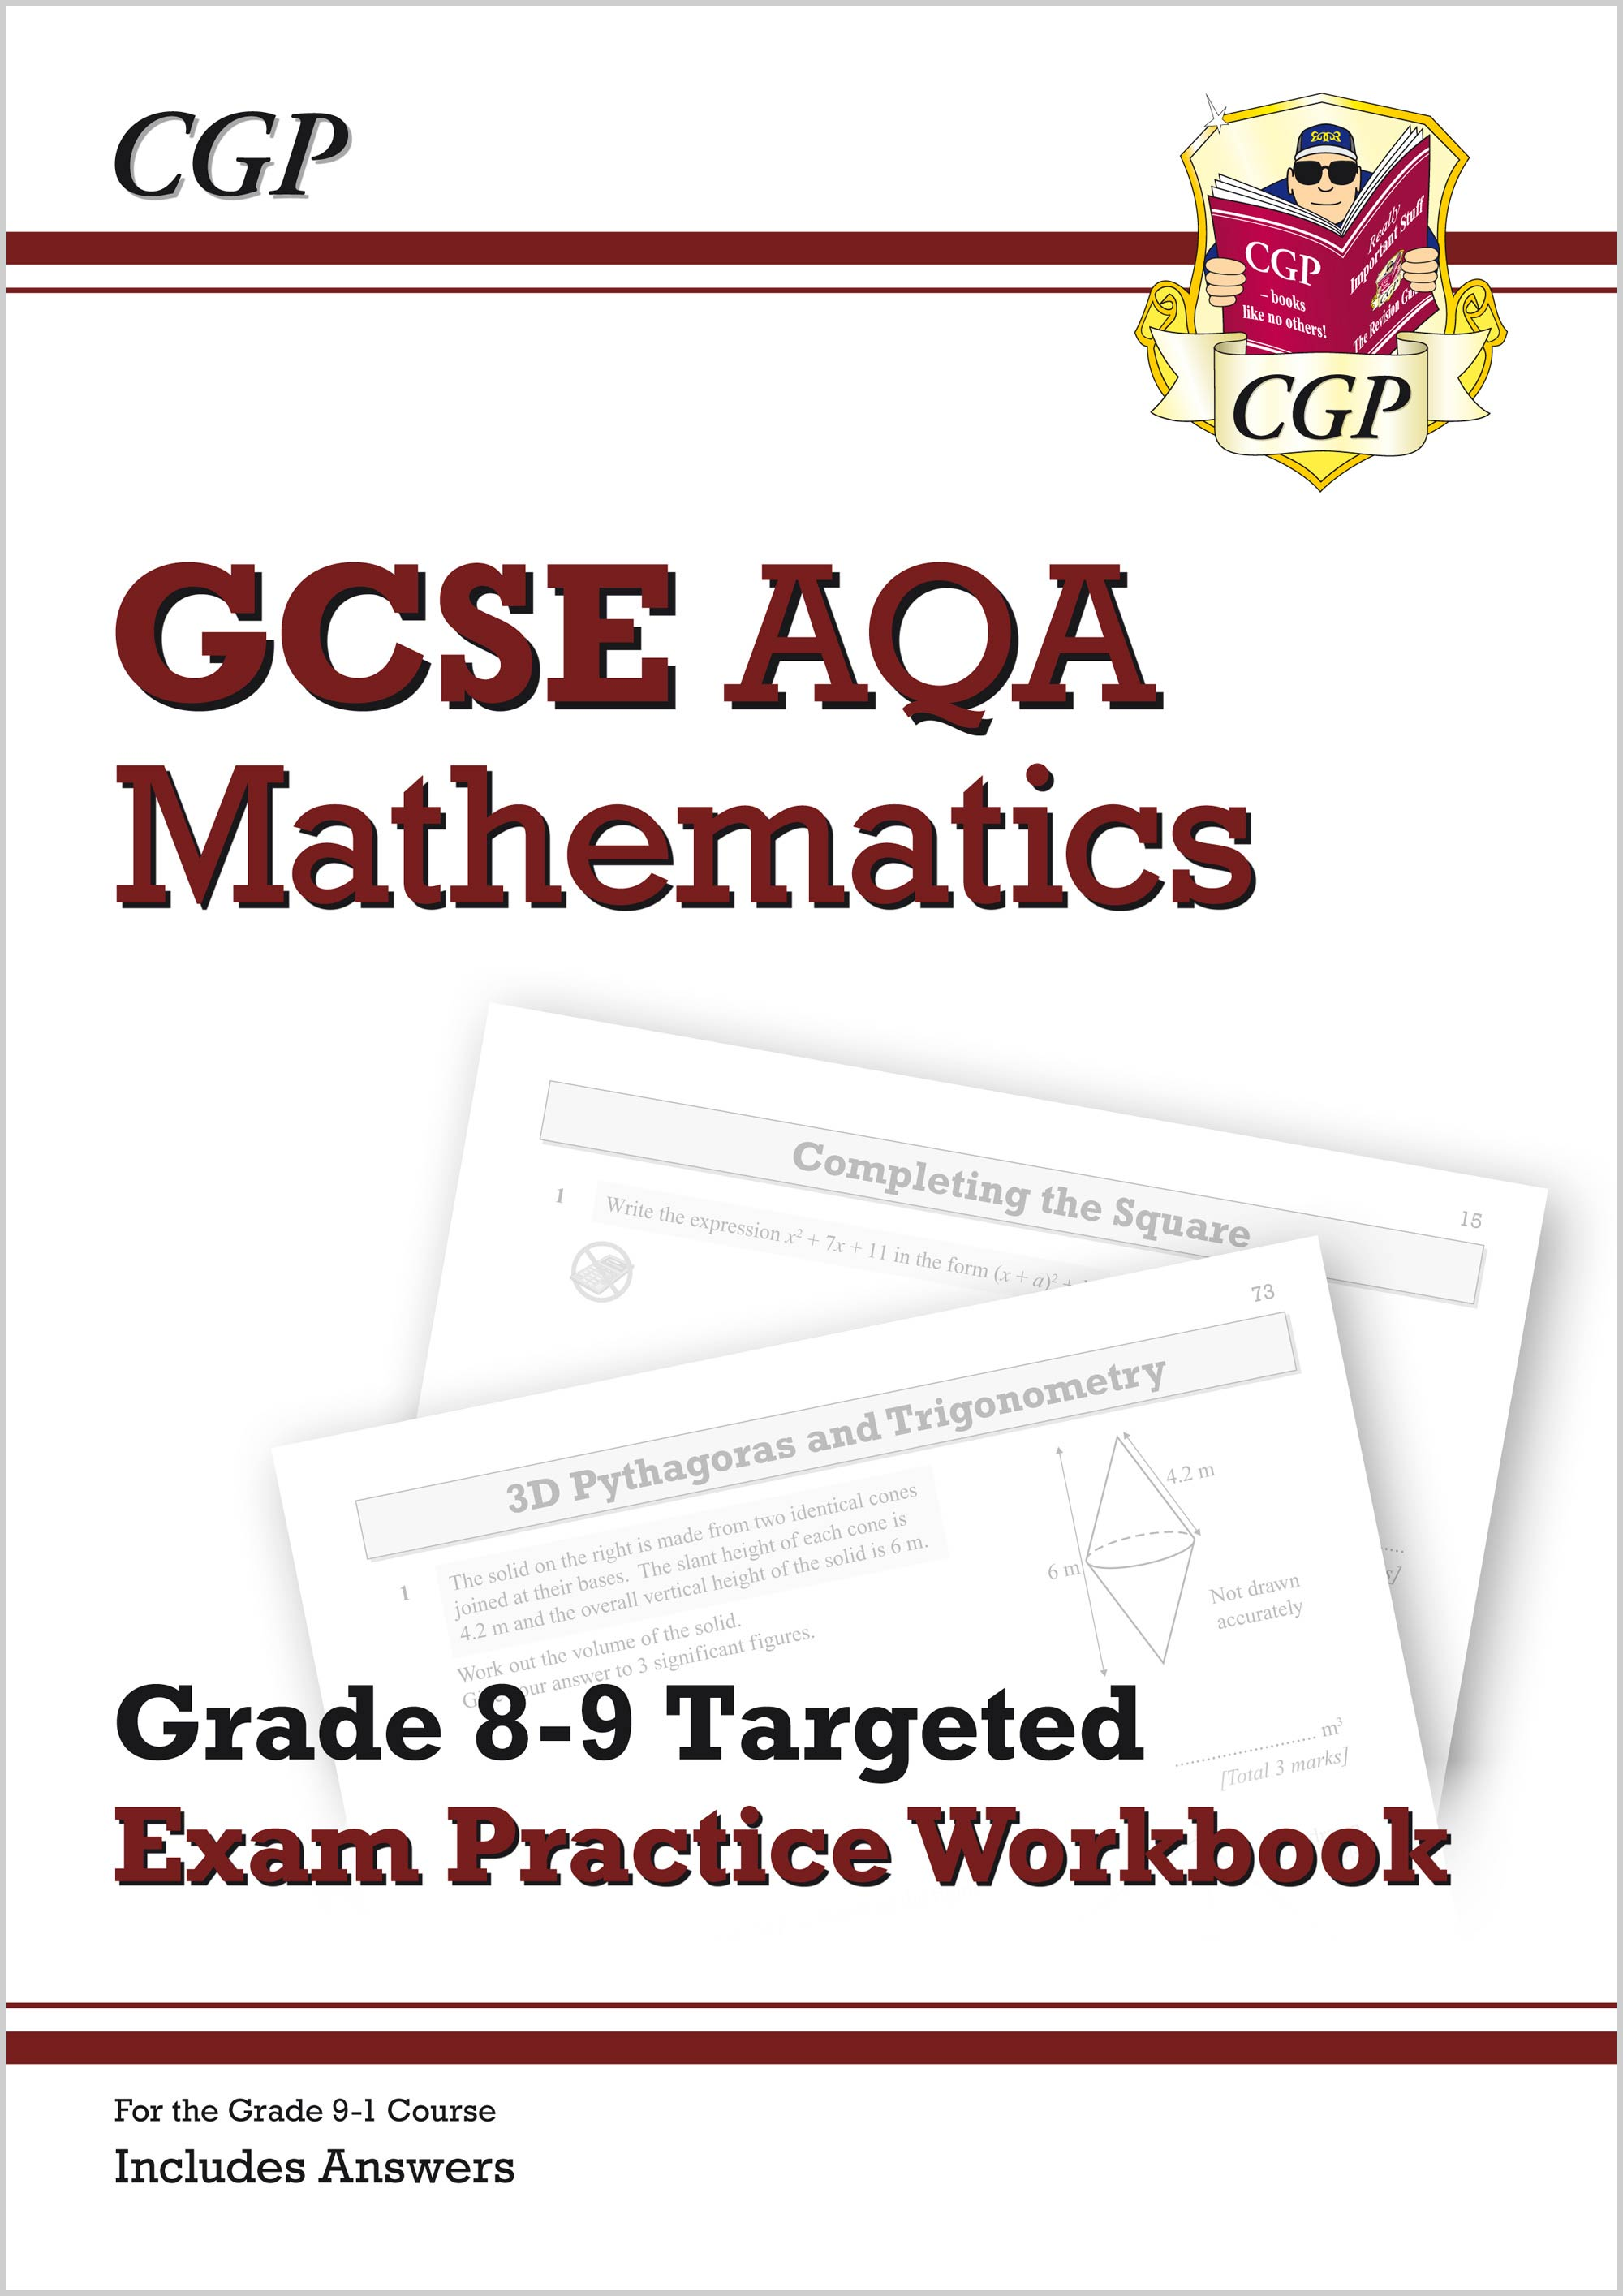 MQ9Q42 - GCSE Maths AQA Grade 8-9 Targeted Exam Practice Workbook (includes Answers)